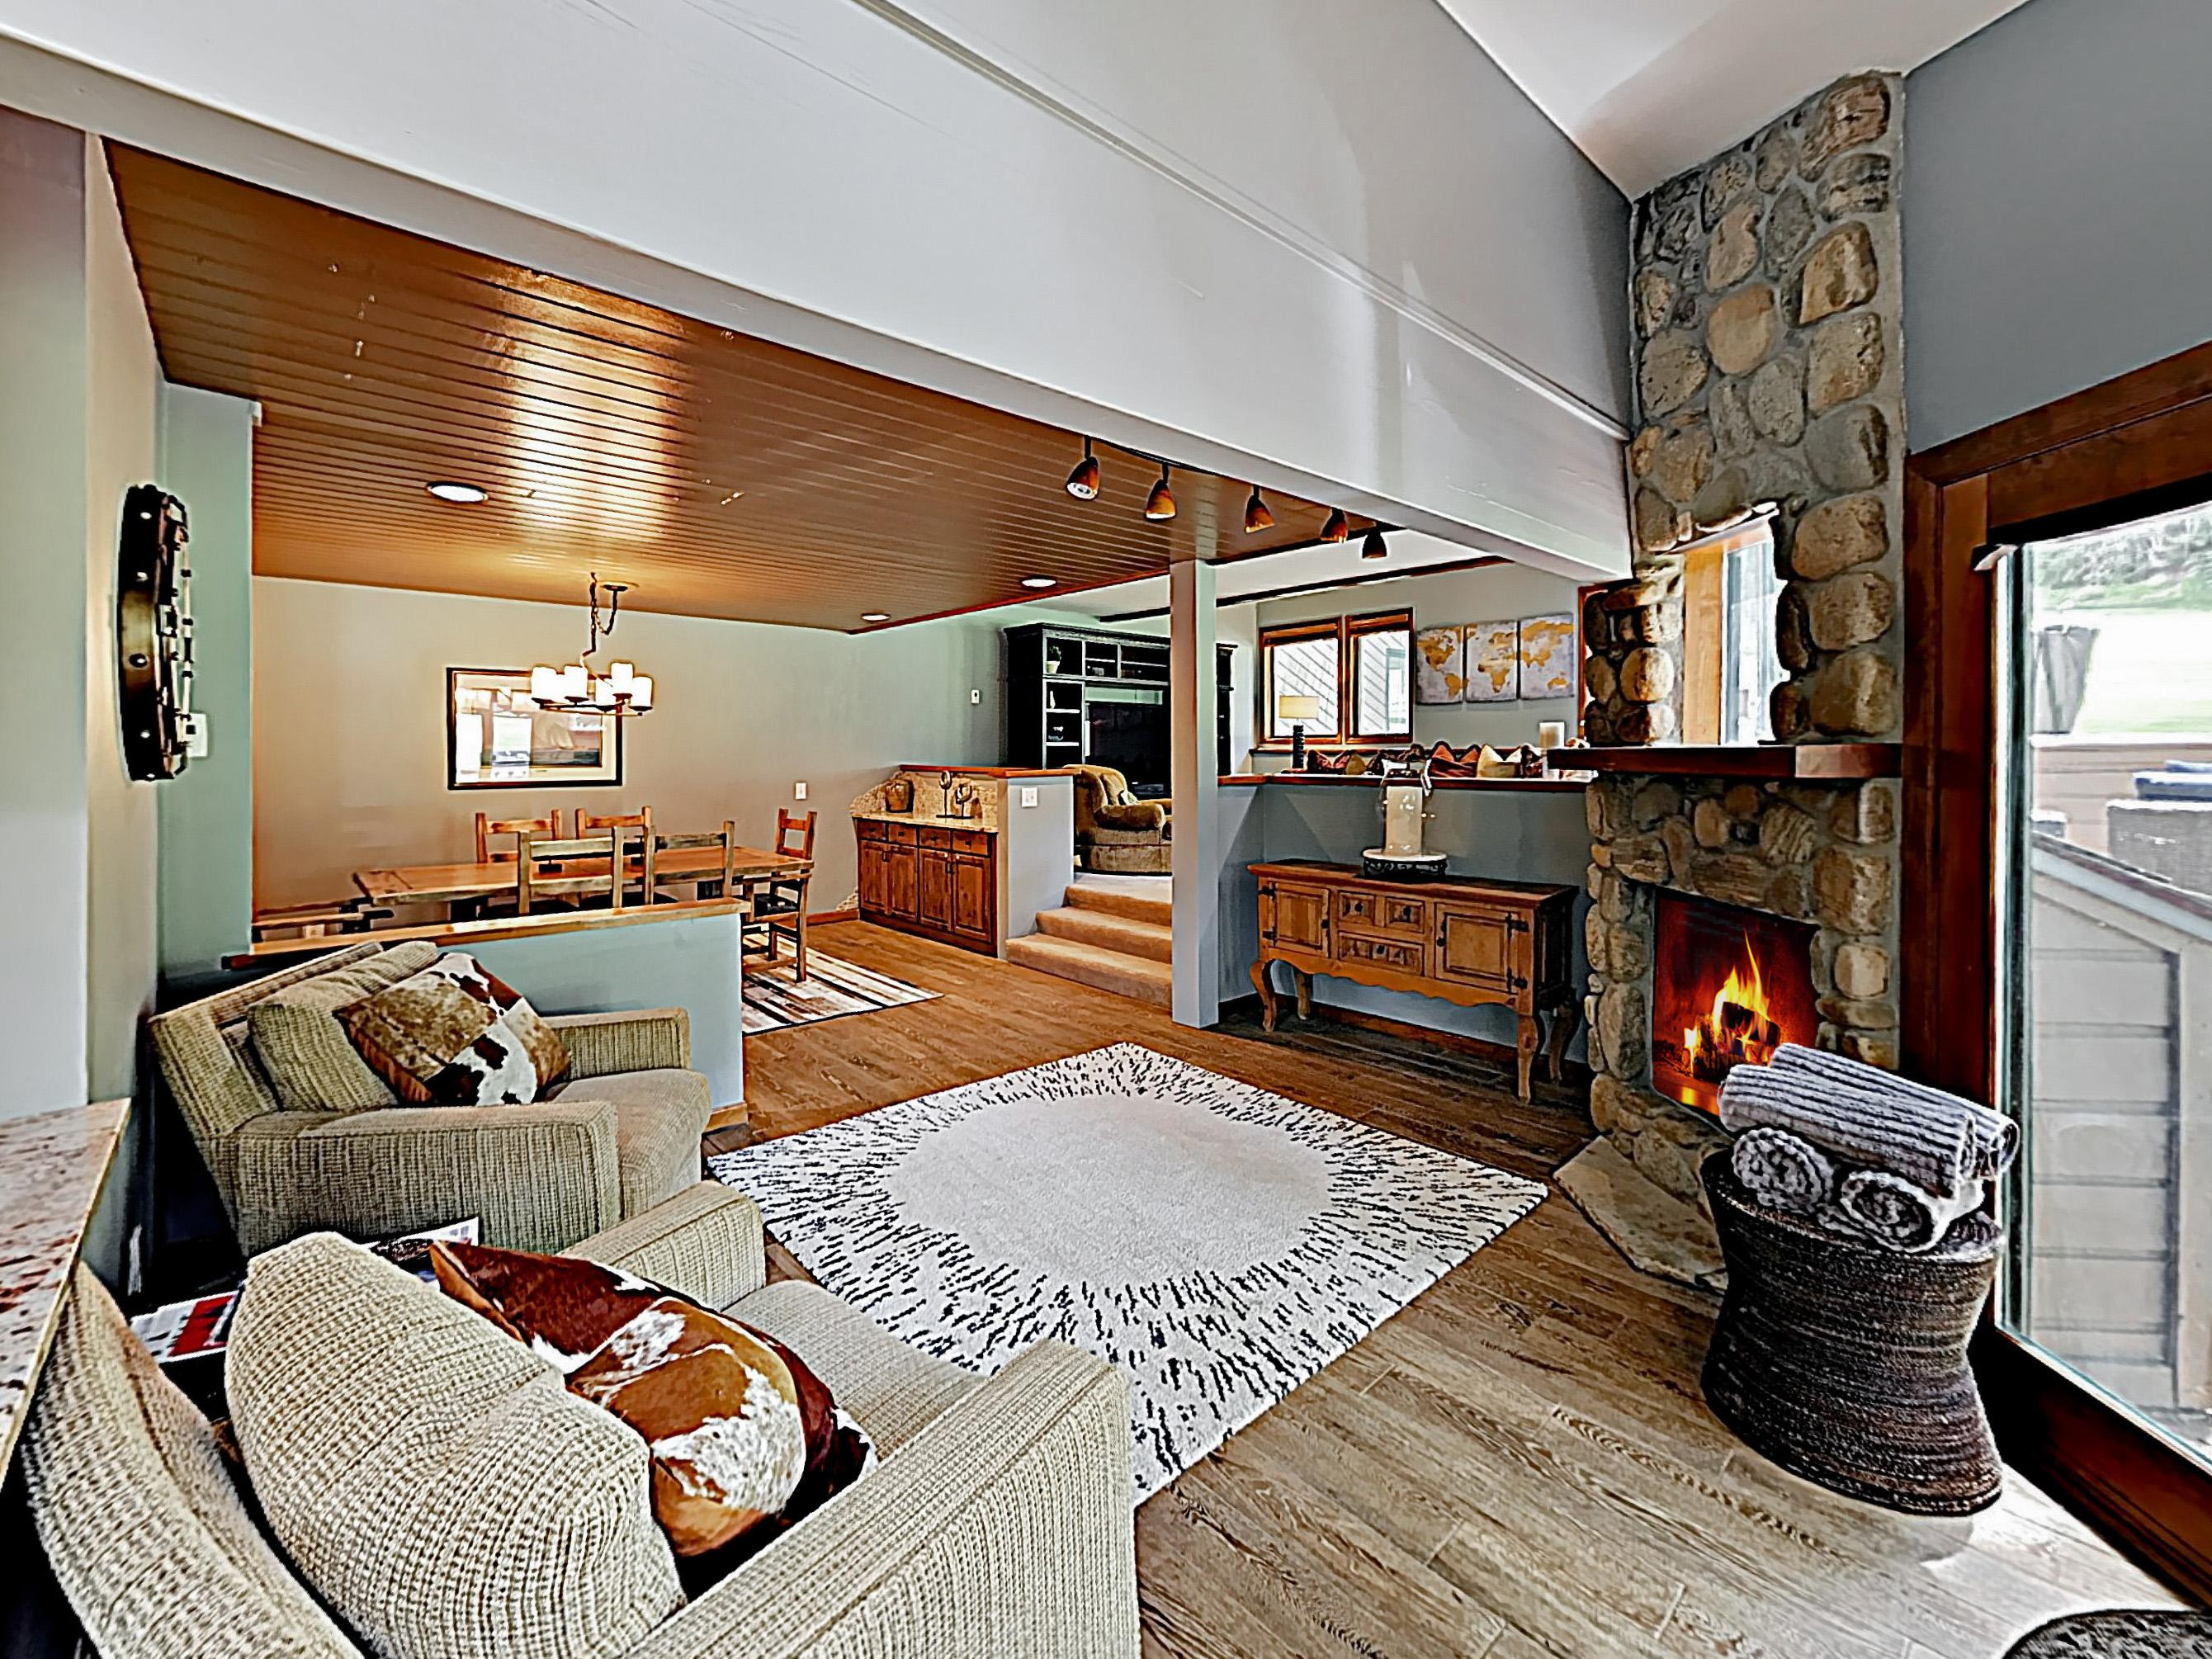 Welcome to Eagle-Vail! This townhome is professionally managed by TurnKey Vacation Rentals.